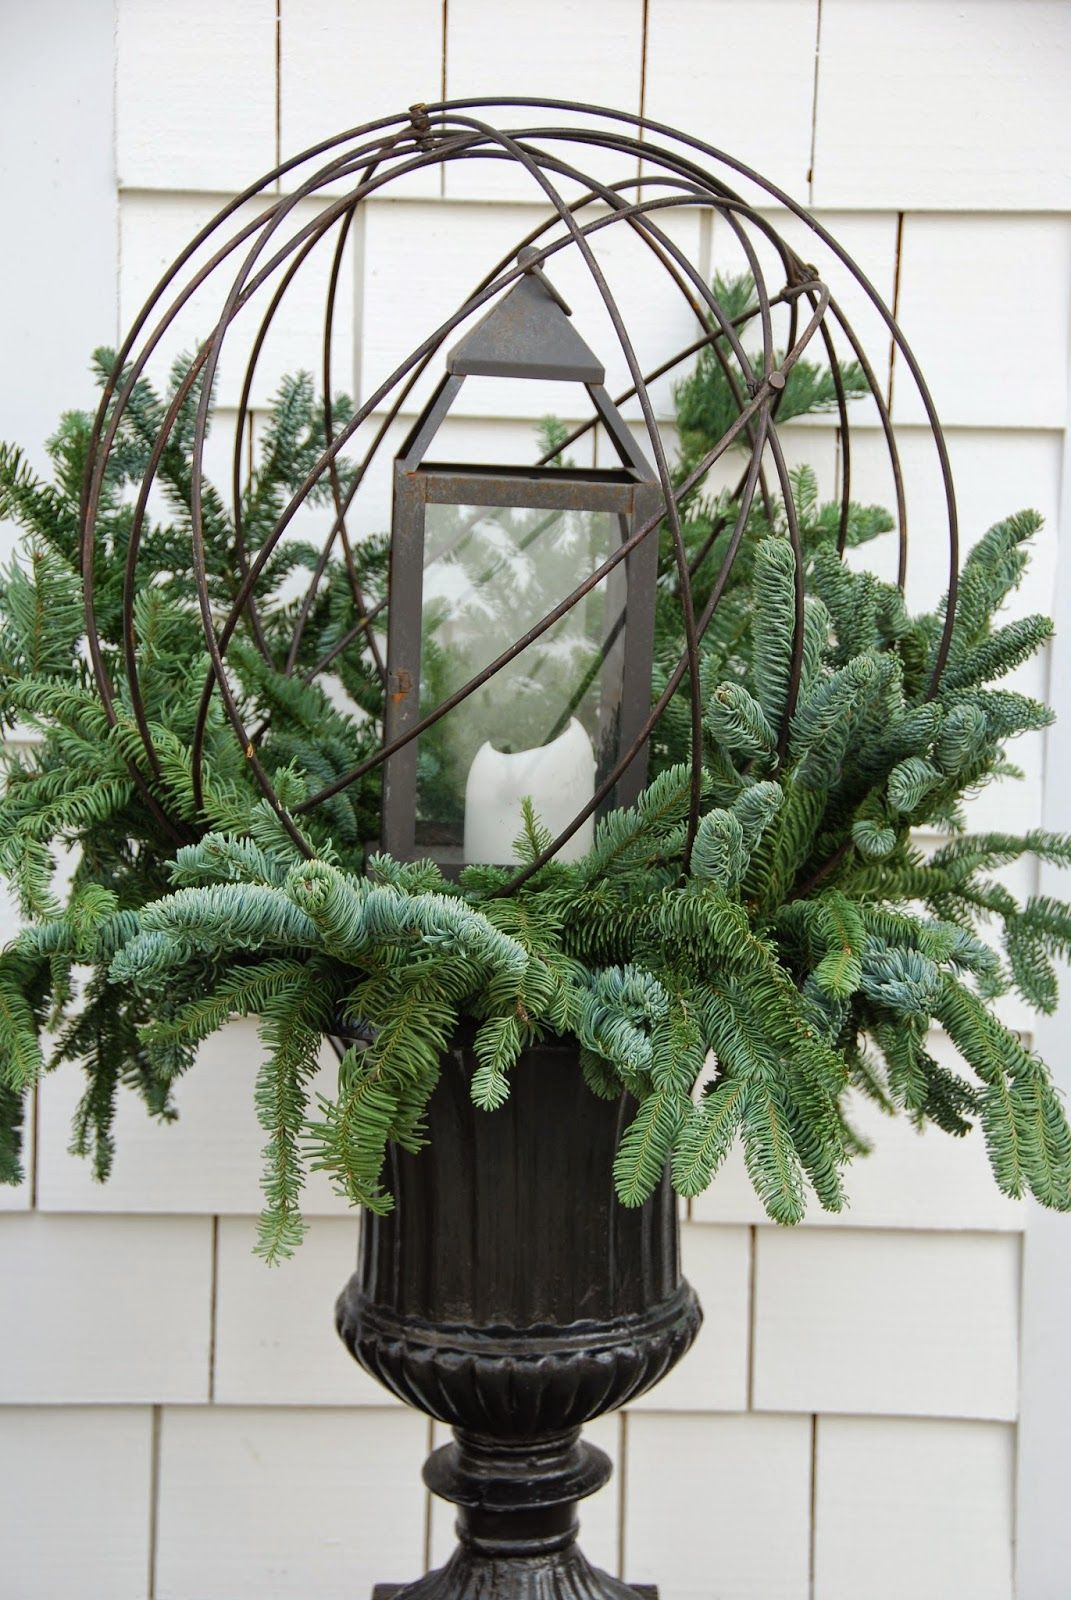 Exterieur Scandinave Pin By Marianne Membot On Jardin Deco Pinterest Noel